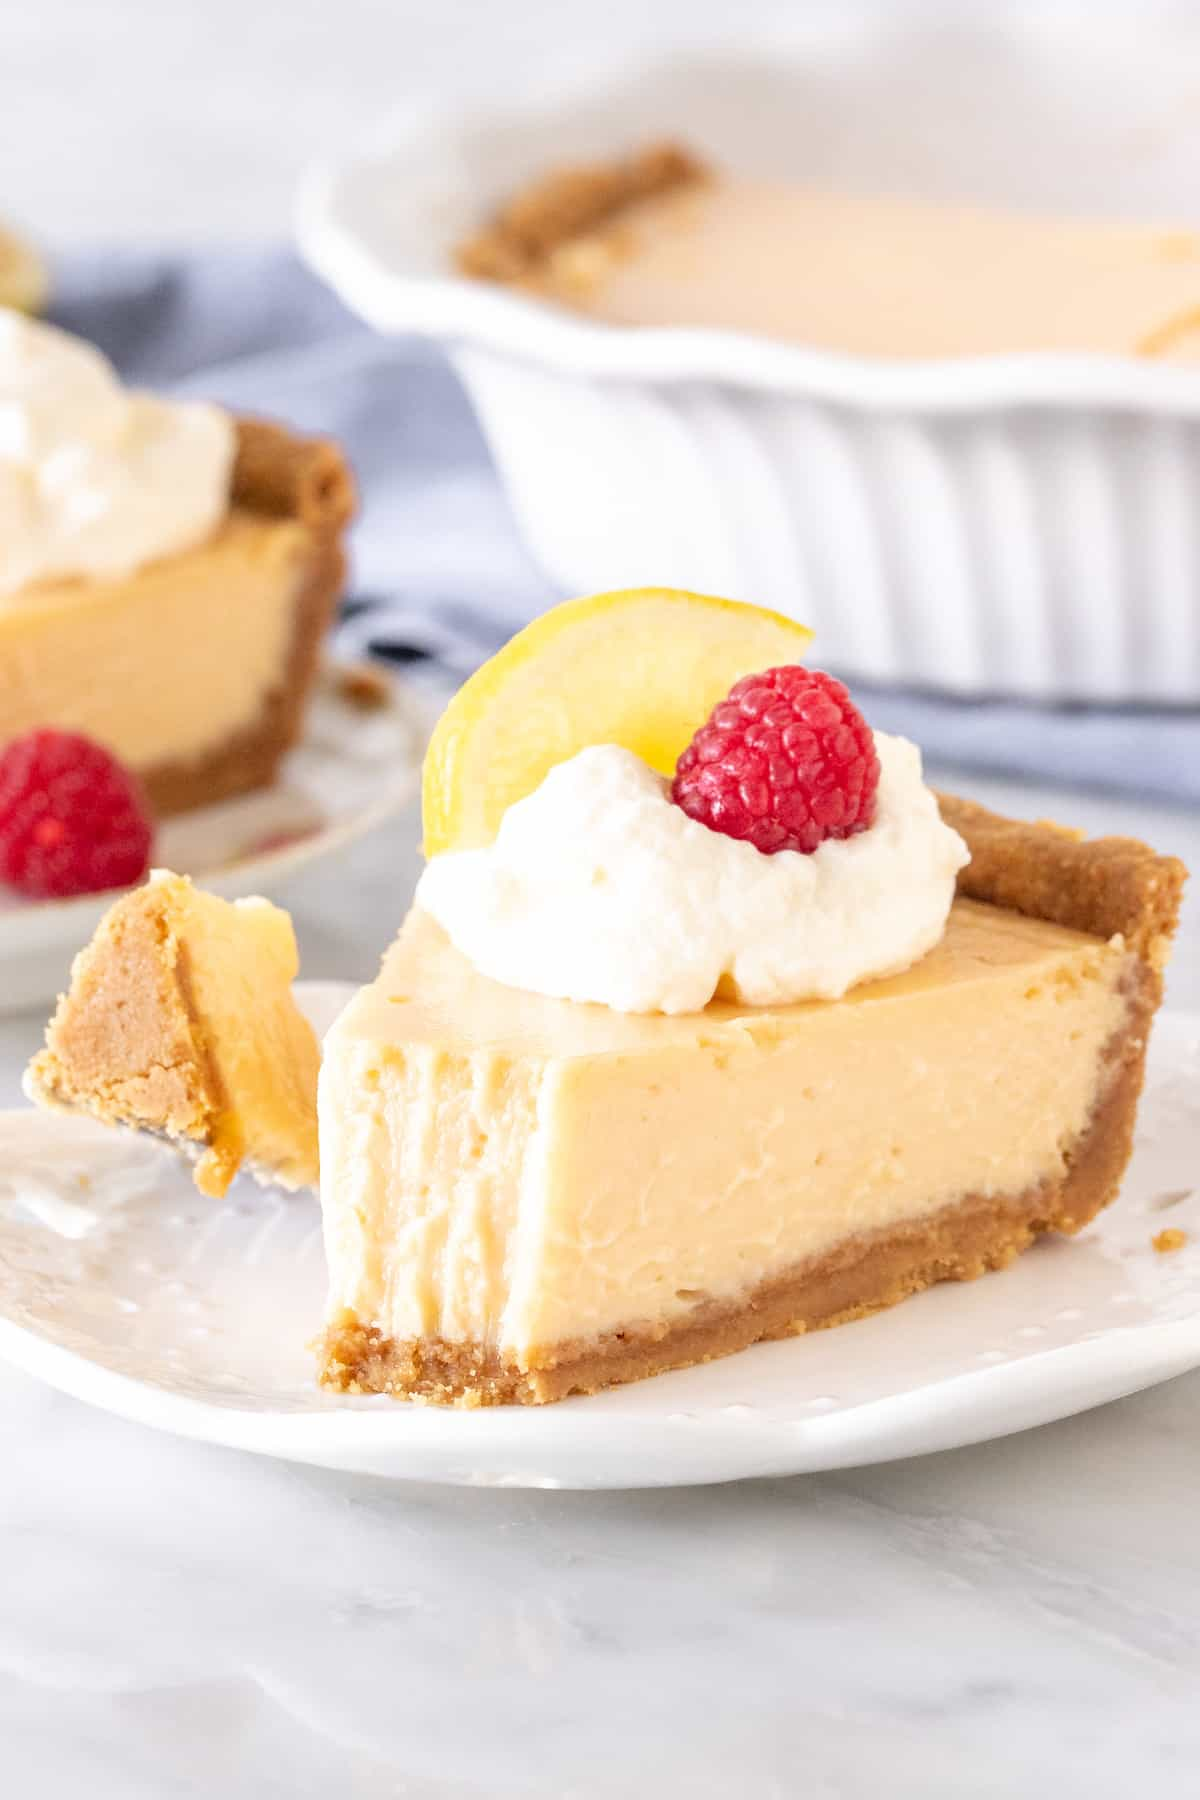 Slice of lemon pie with a graham cracker crust.